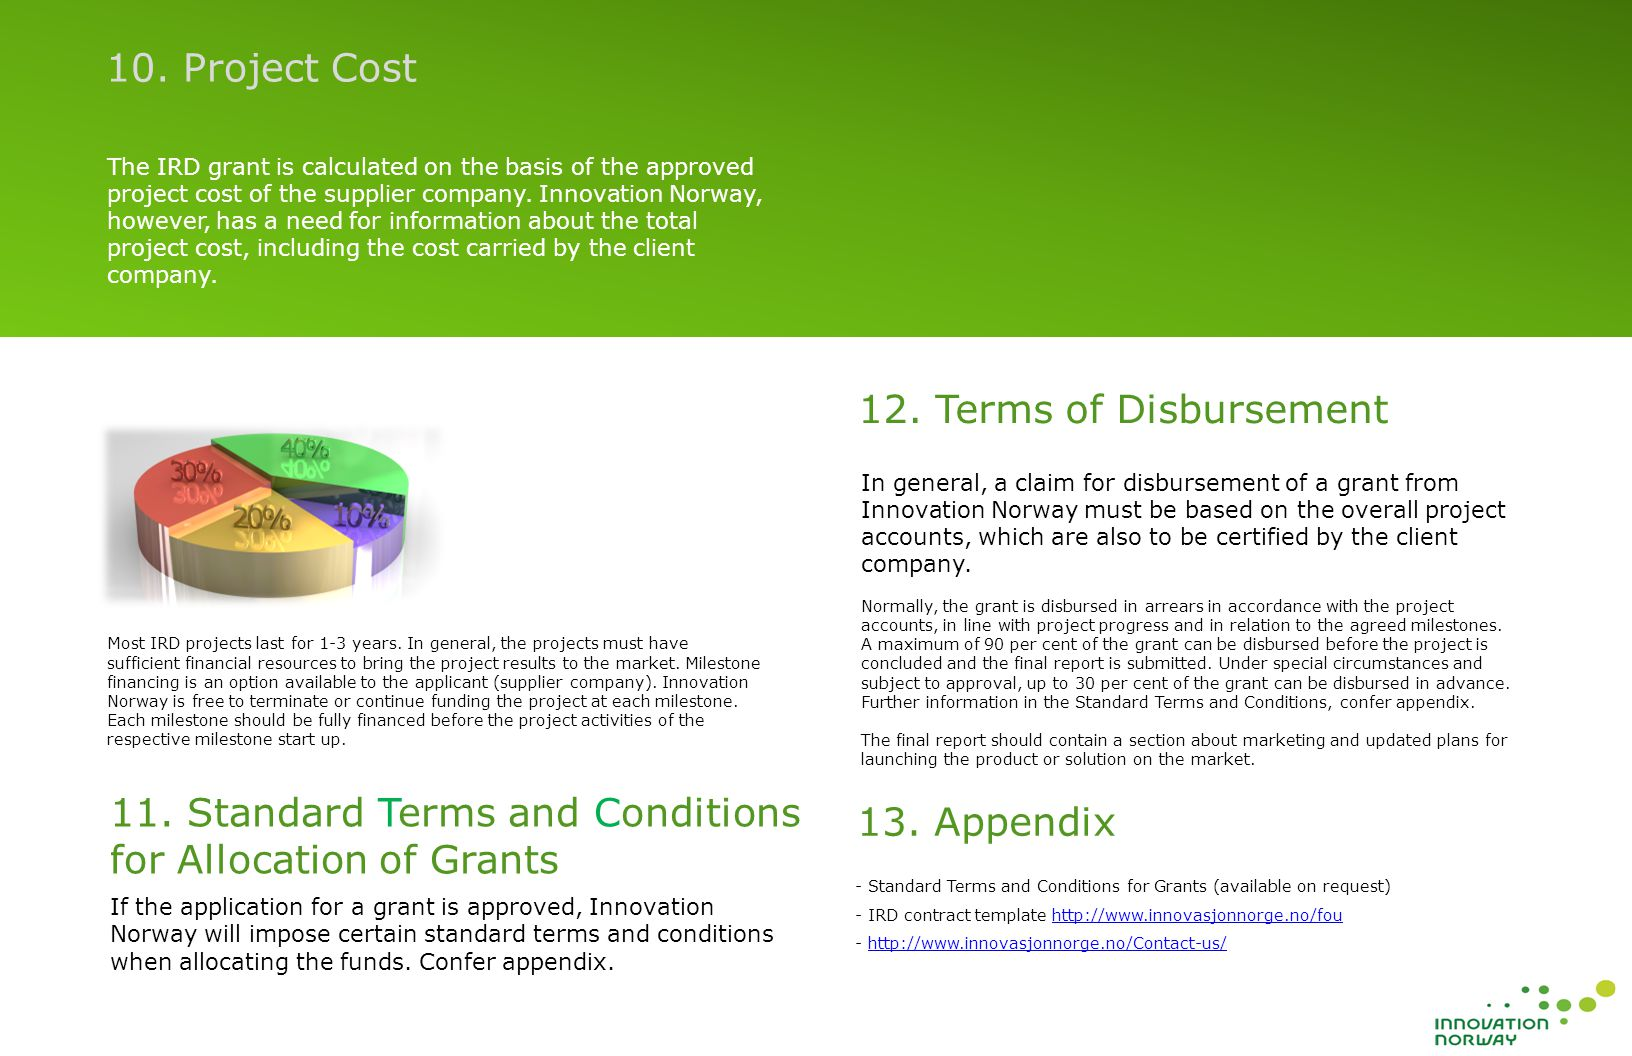 The IRD grant is calculated on the basis of the approved project cost of the supplier company.